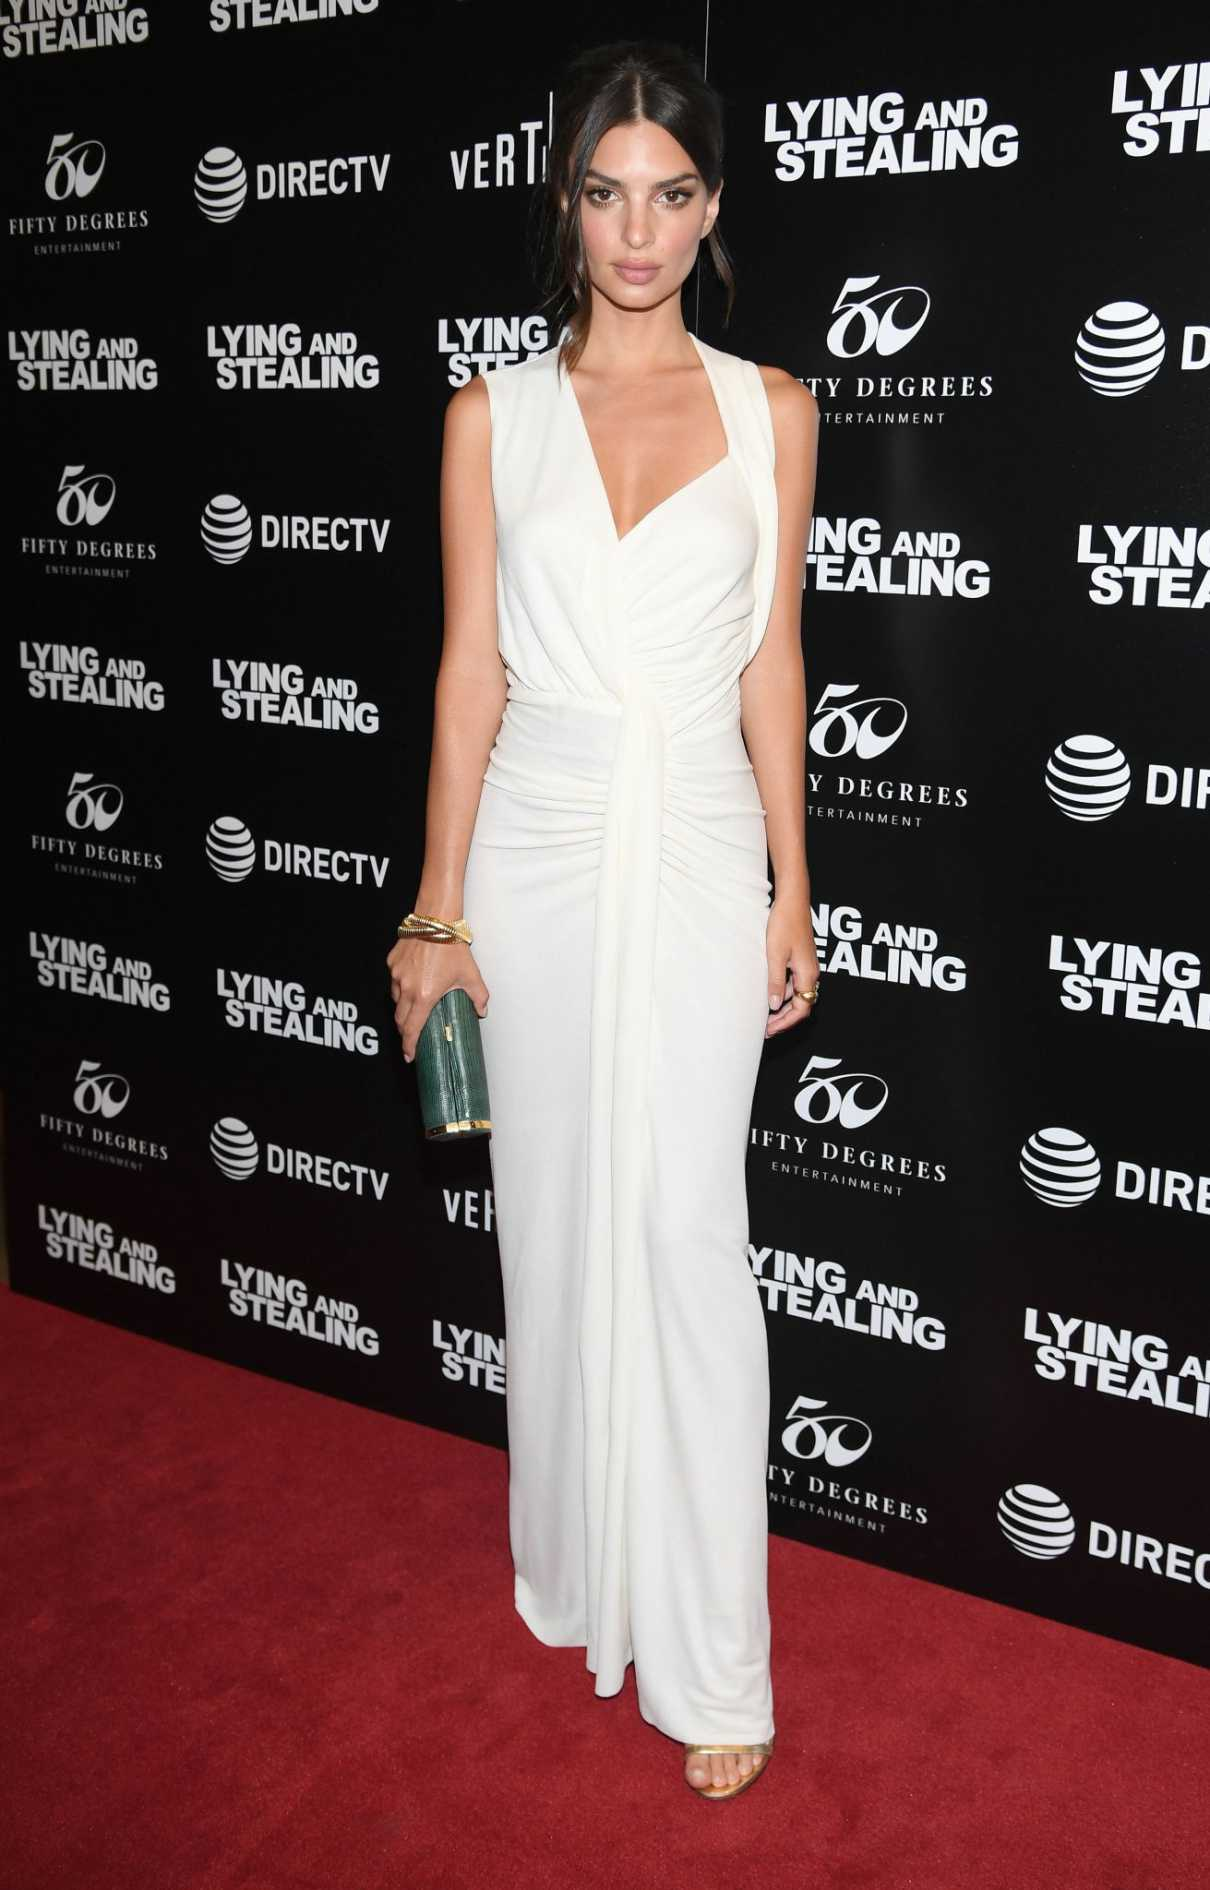 Emily Ratajkowski Attends The Lying And Stealing Screening